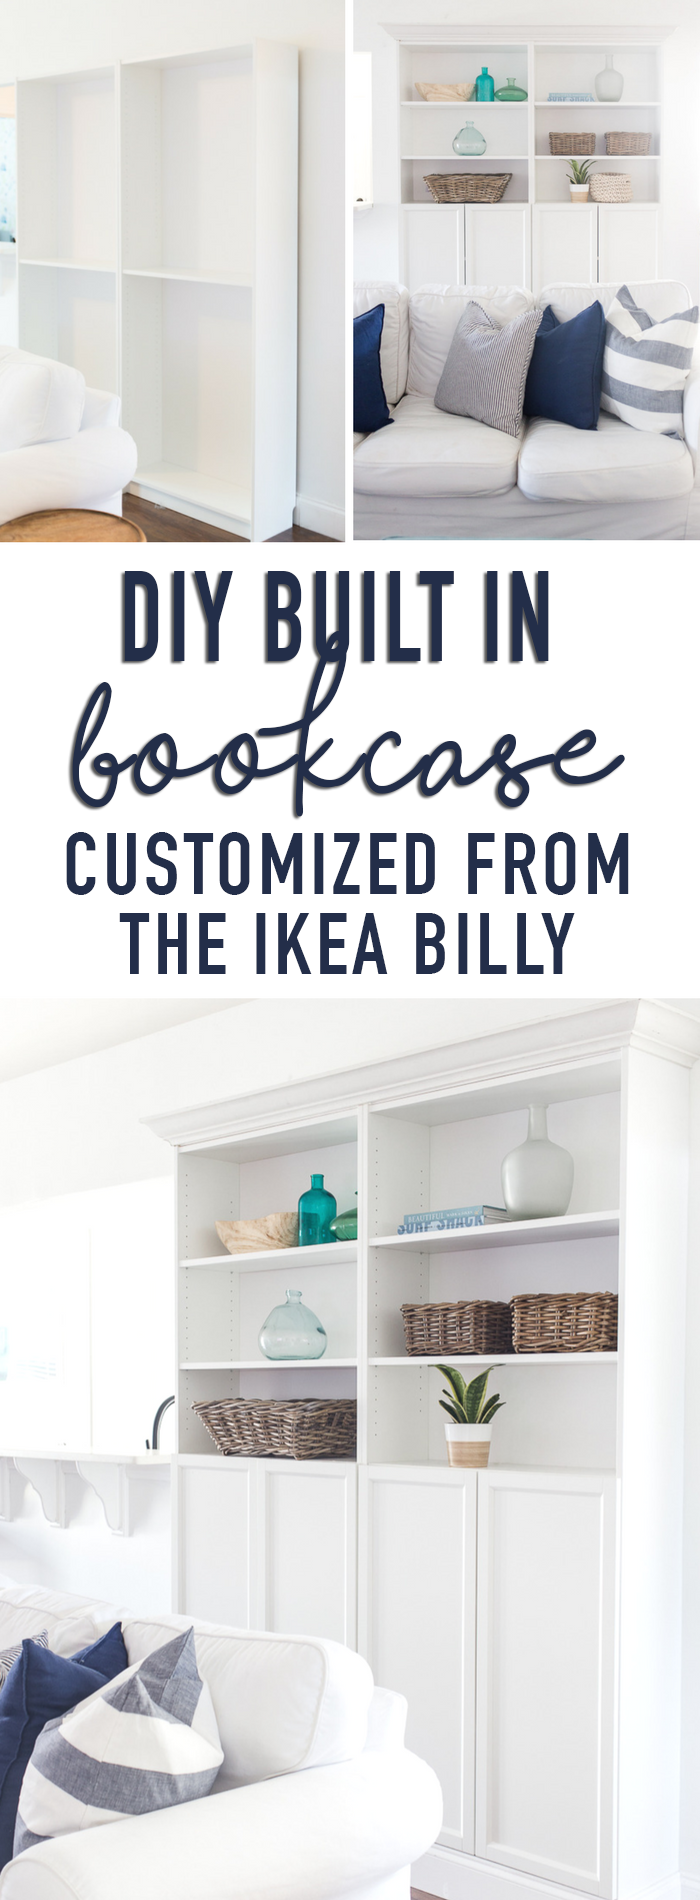 diy built in bookcases customized from the ikea billy bookcase - Ikea Built In Bookshelves